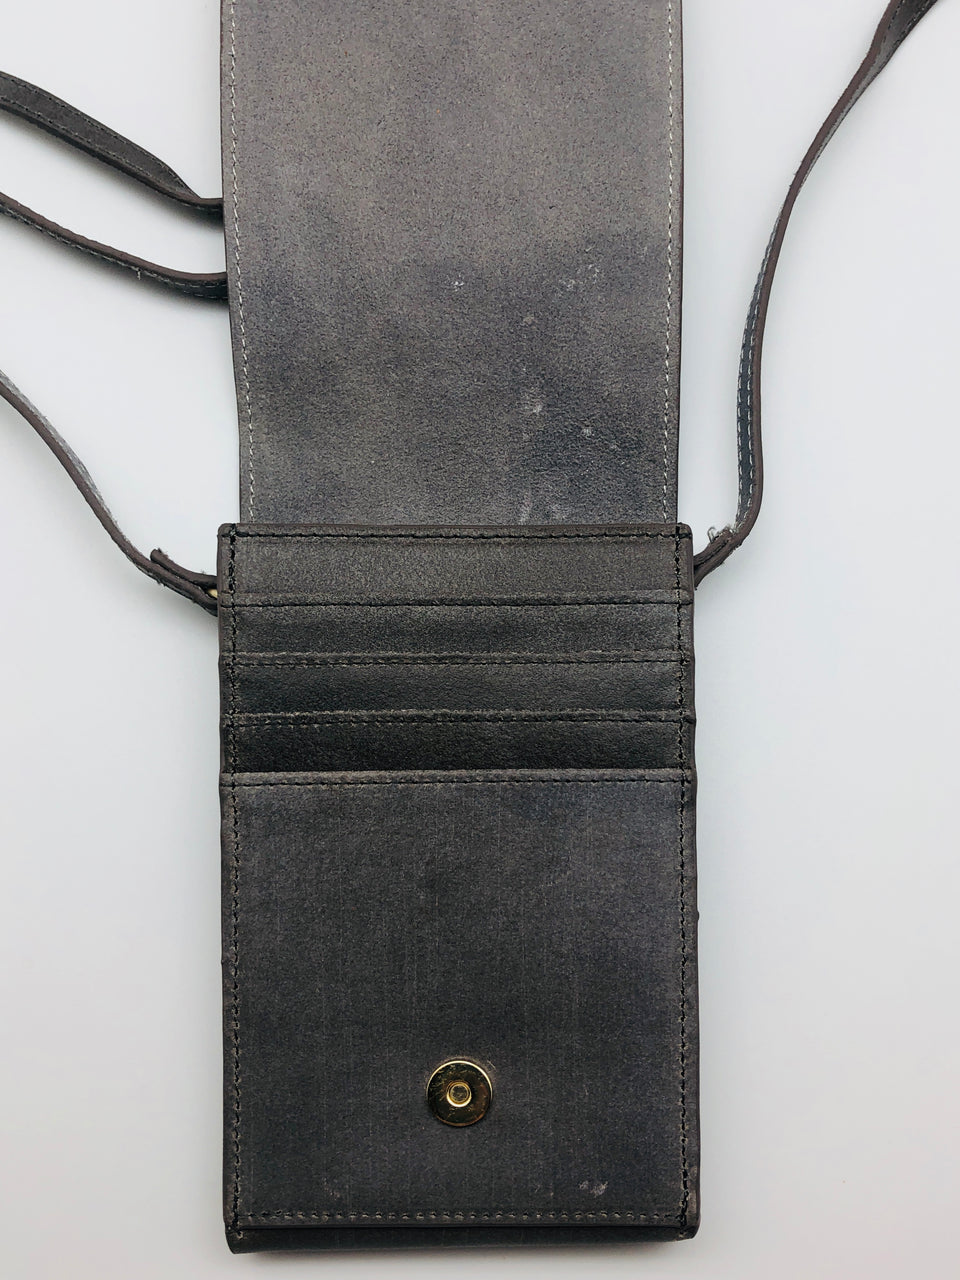 CARD HOLDER CROSSBODY